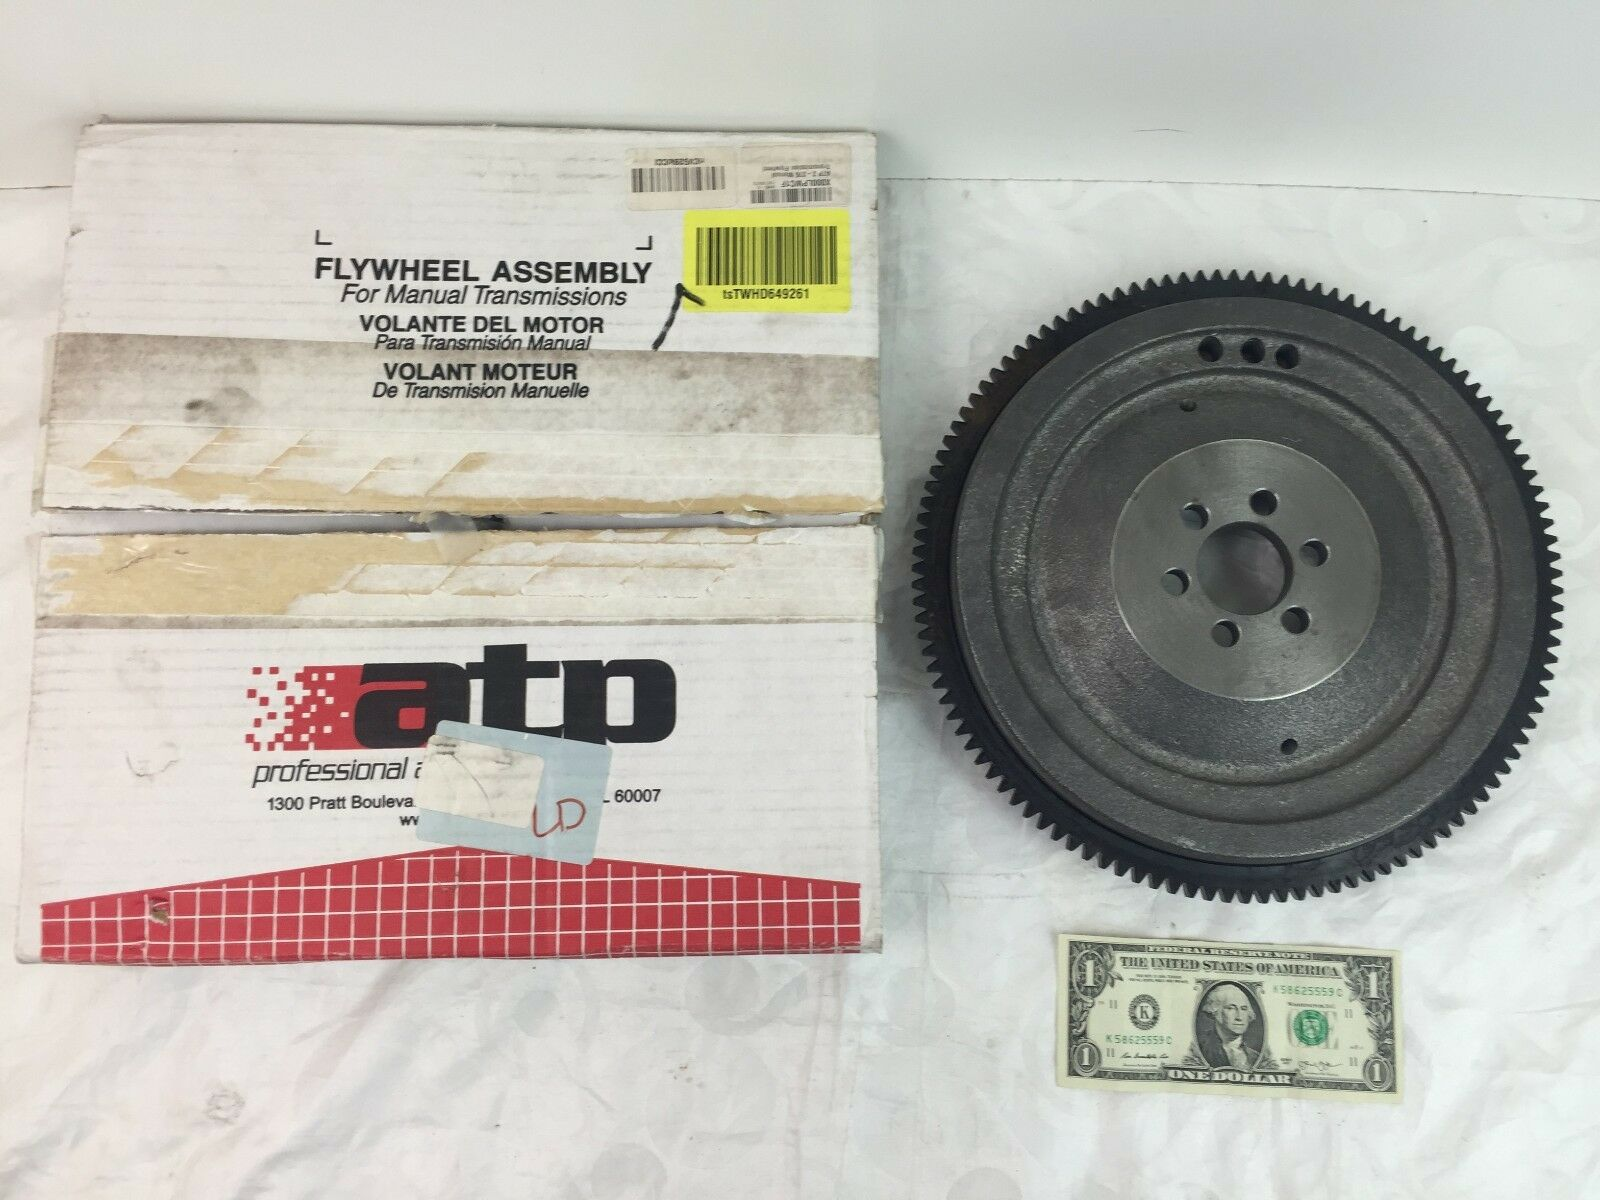 ATP Z-276 Manual Transmission Flywheel 1 of 6Only 1 available See More